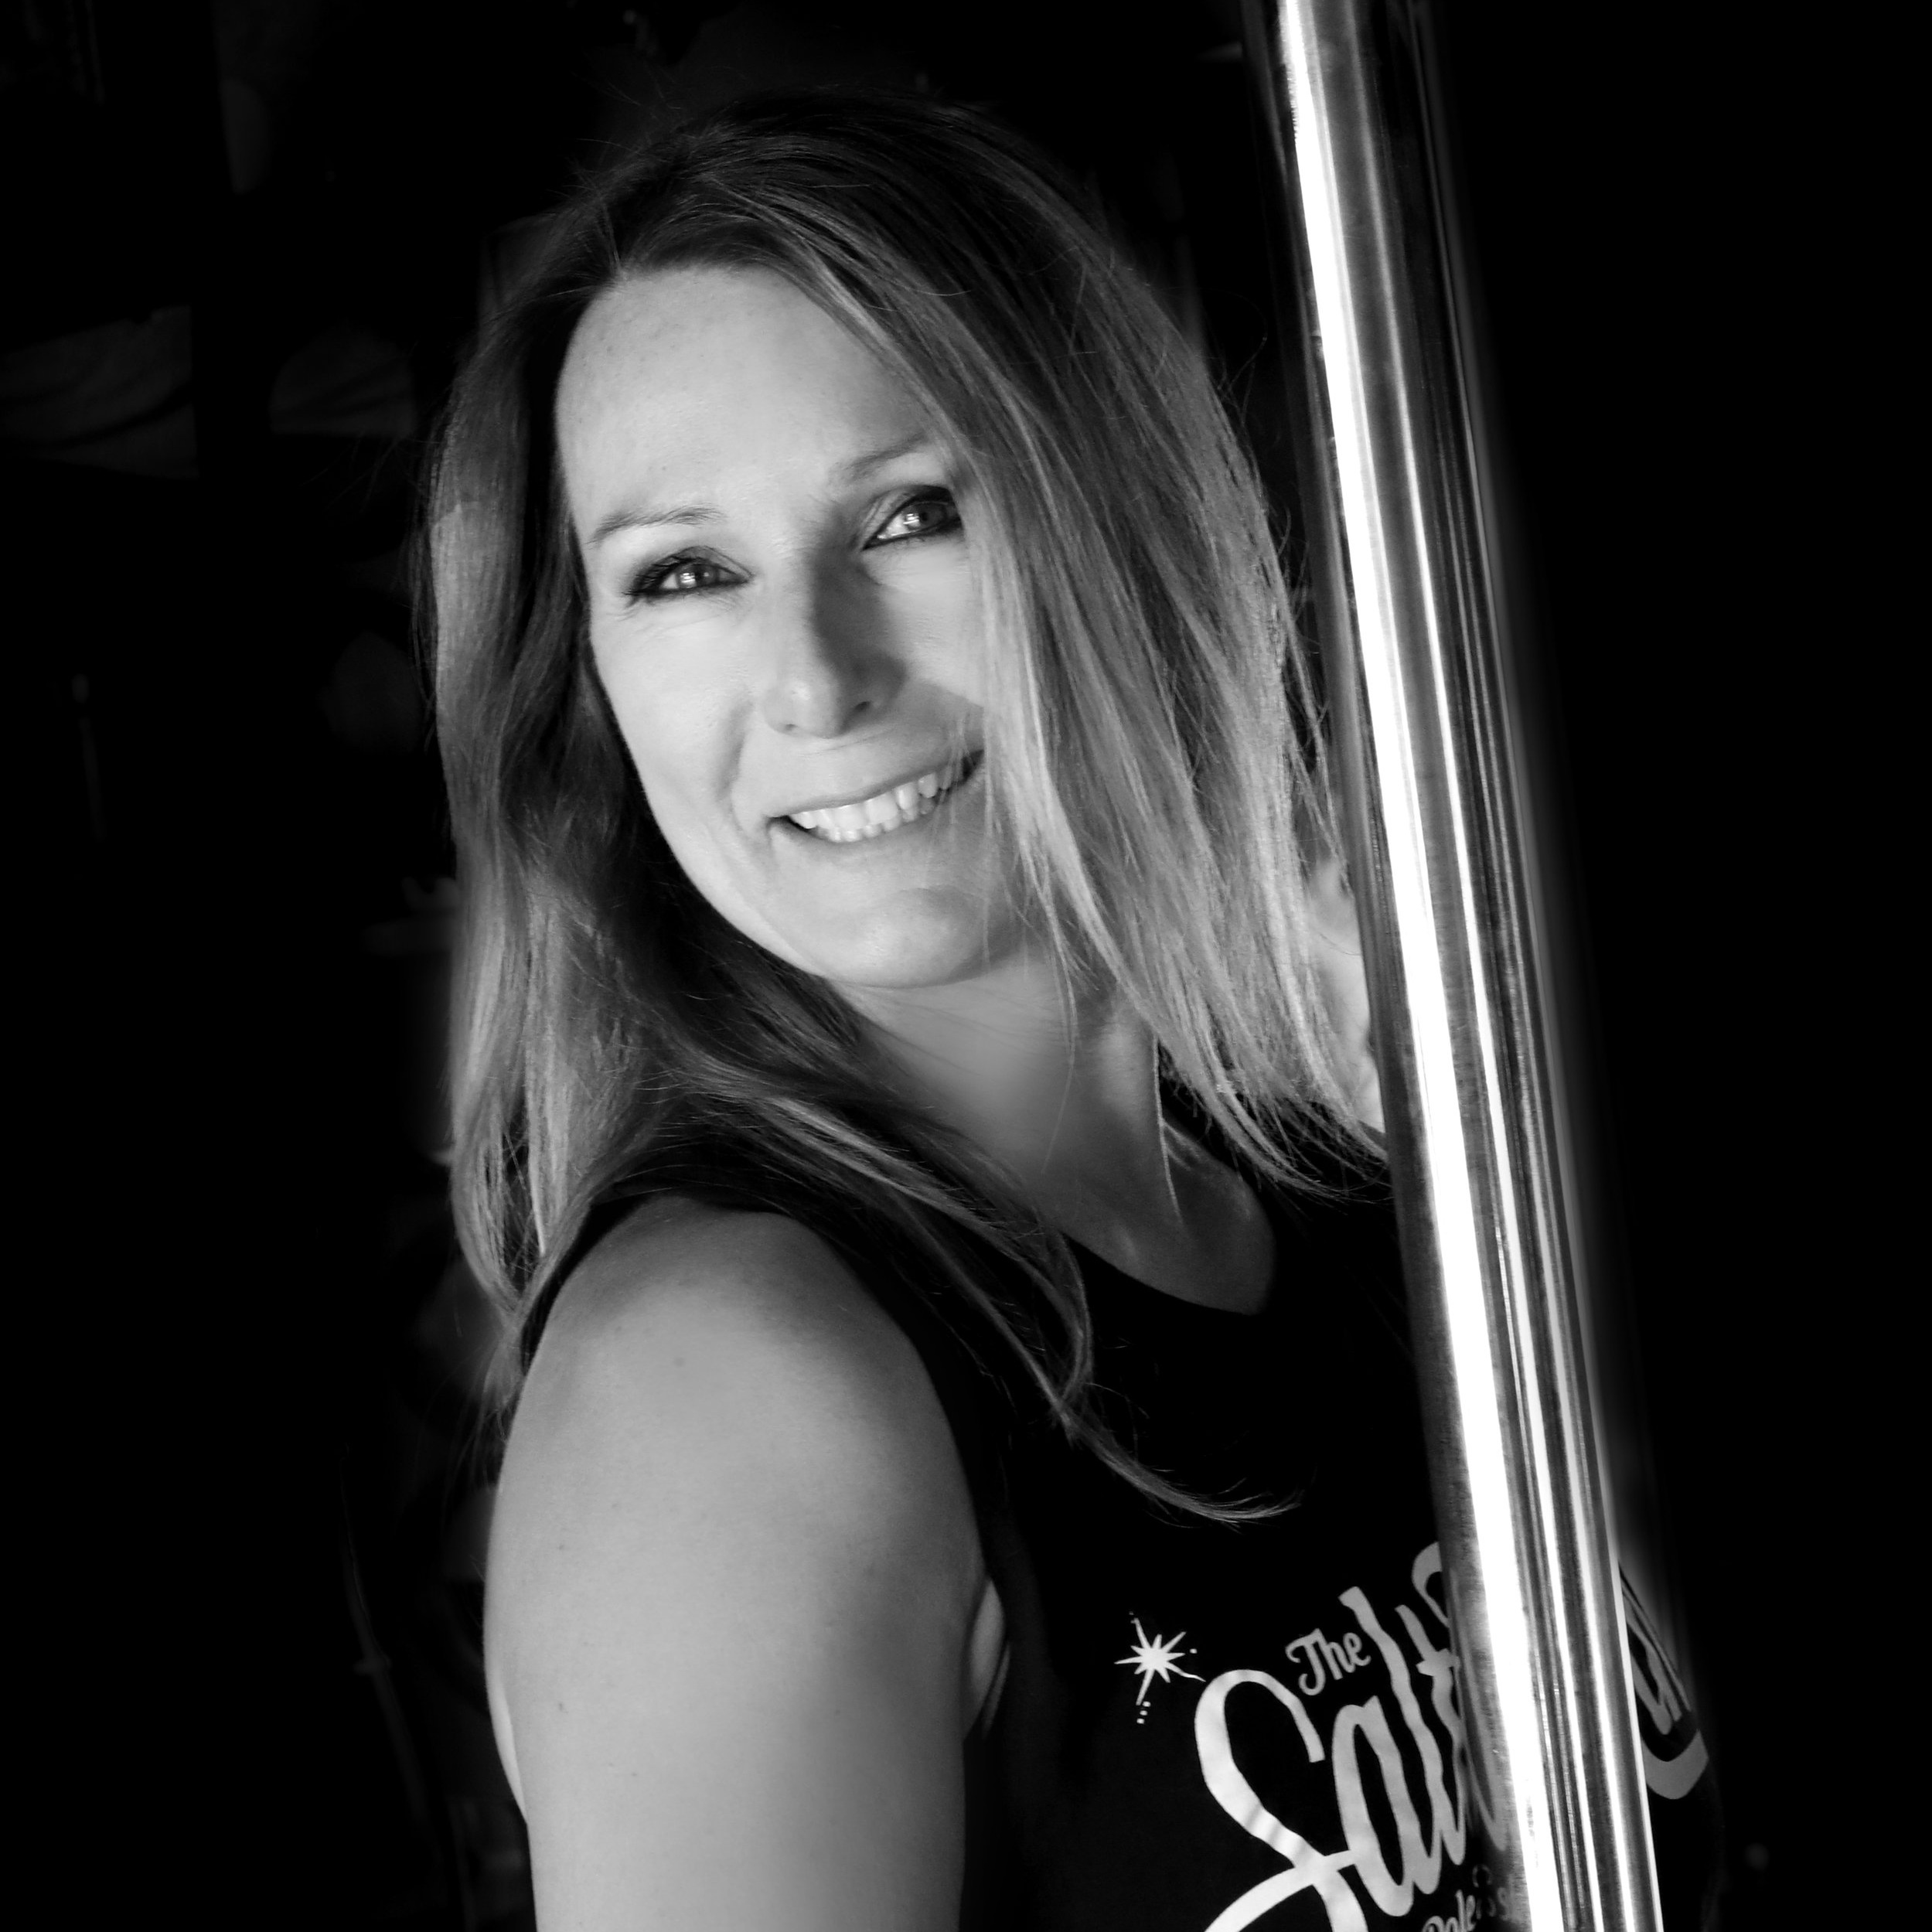 Shelley Meier - Shelly has been in the pole industry in Salt Lake since 2007. If you know a woman who has been involved with pole, chances are, Shelly was her first instructor! She embraces the sensuality of pole and loves helping students become physically strong and psychologically self confident. Shelly adores it when each students creates their own unique style of dance. She believes that pole is accessible to any woman, regardless of their age. Her motto is